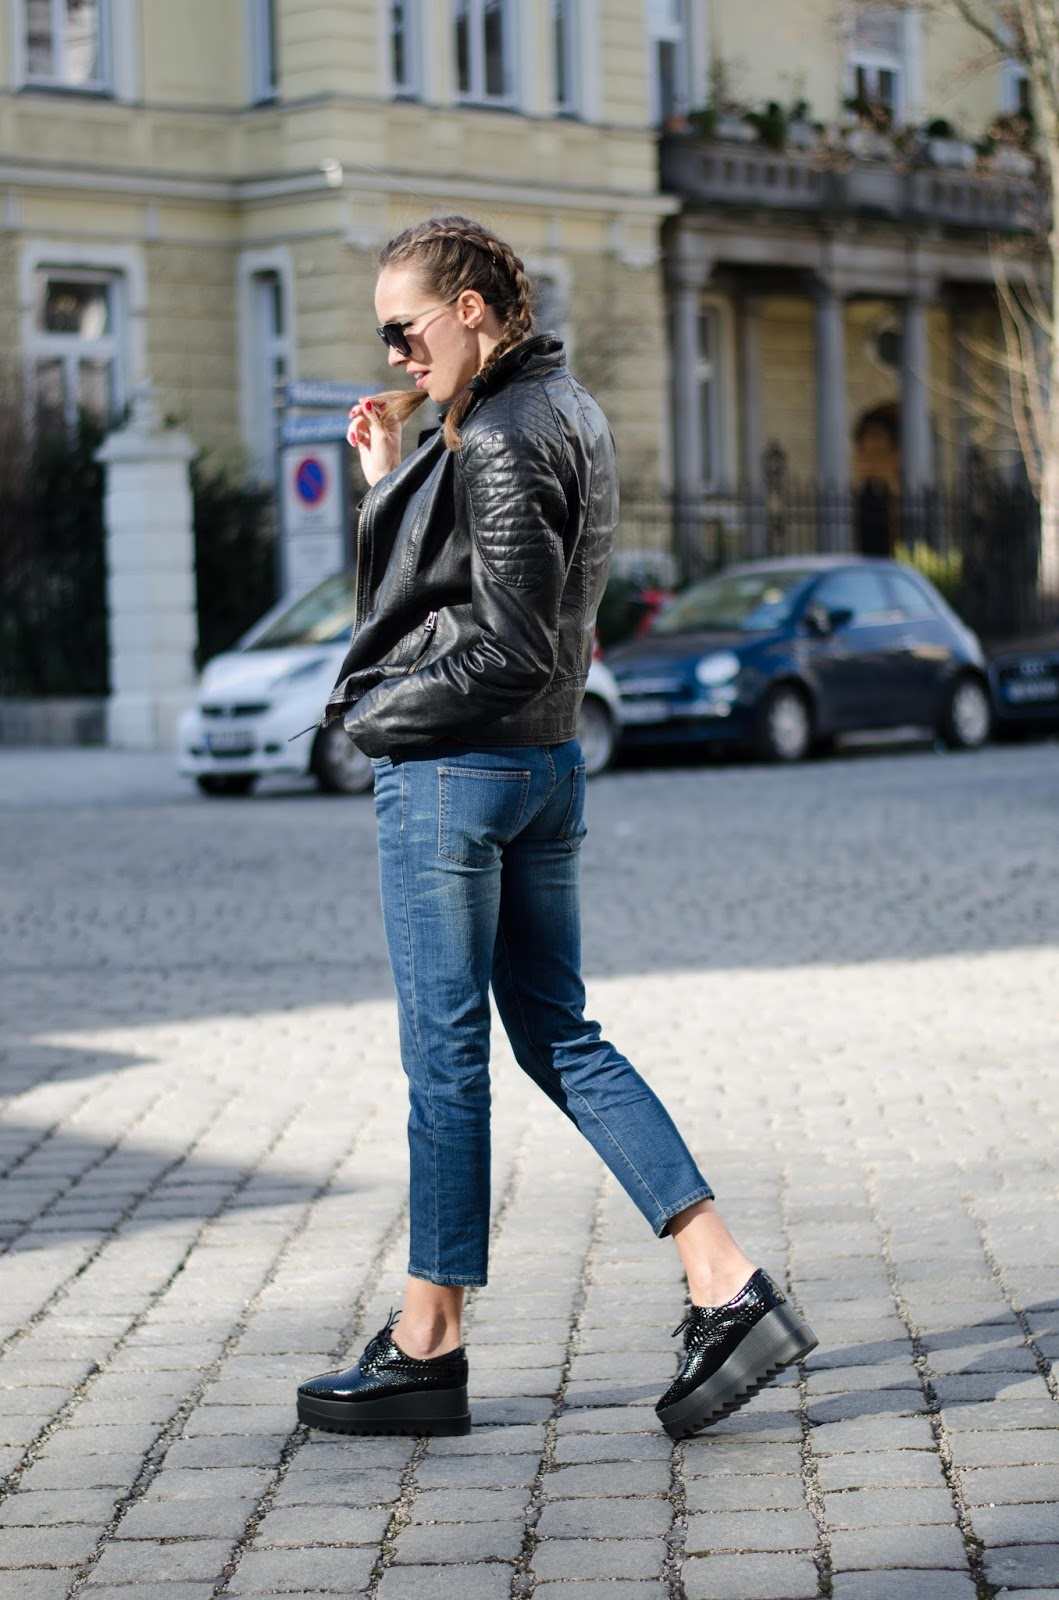 kristjaana mere prada sunglasses barneys leather jacket dutch braids flatform shoes mom jeans